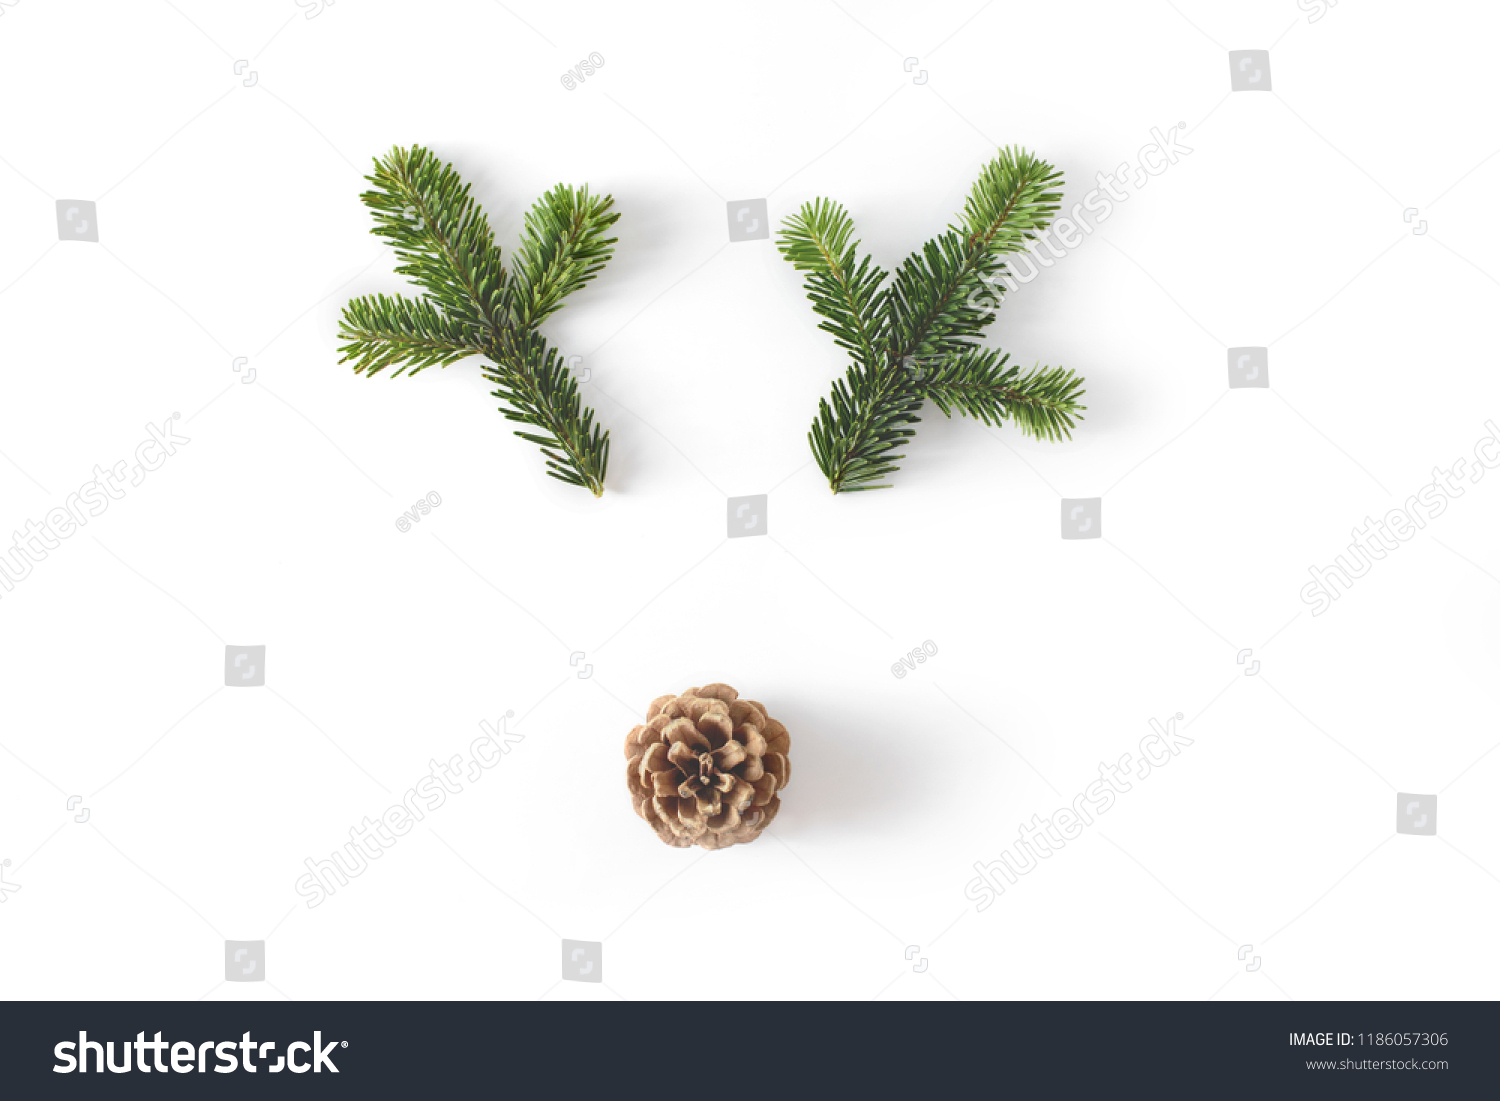 Christmas deer funny face made of fir-tree branches and coniferous cone isolated on white. New year celebration concept. #1186057306